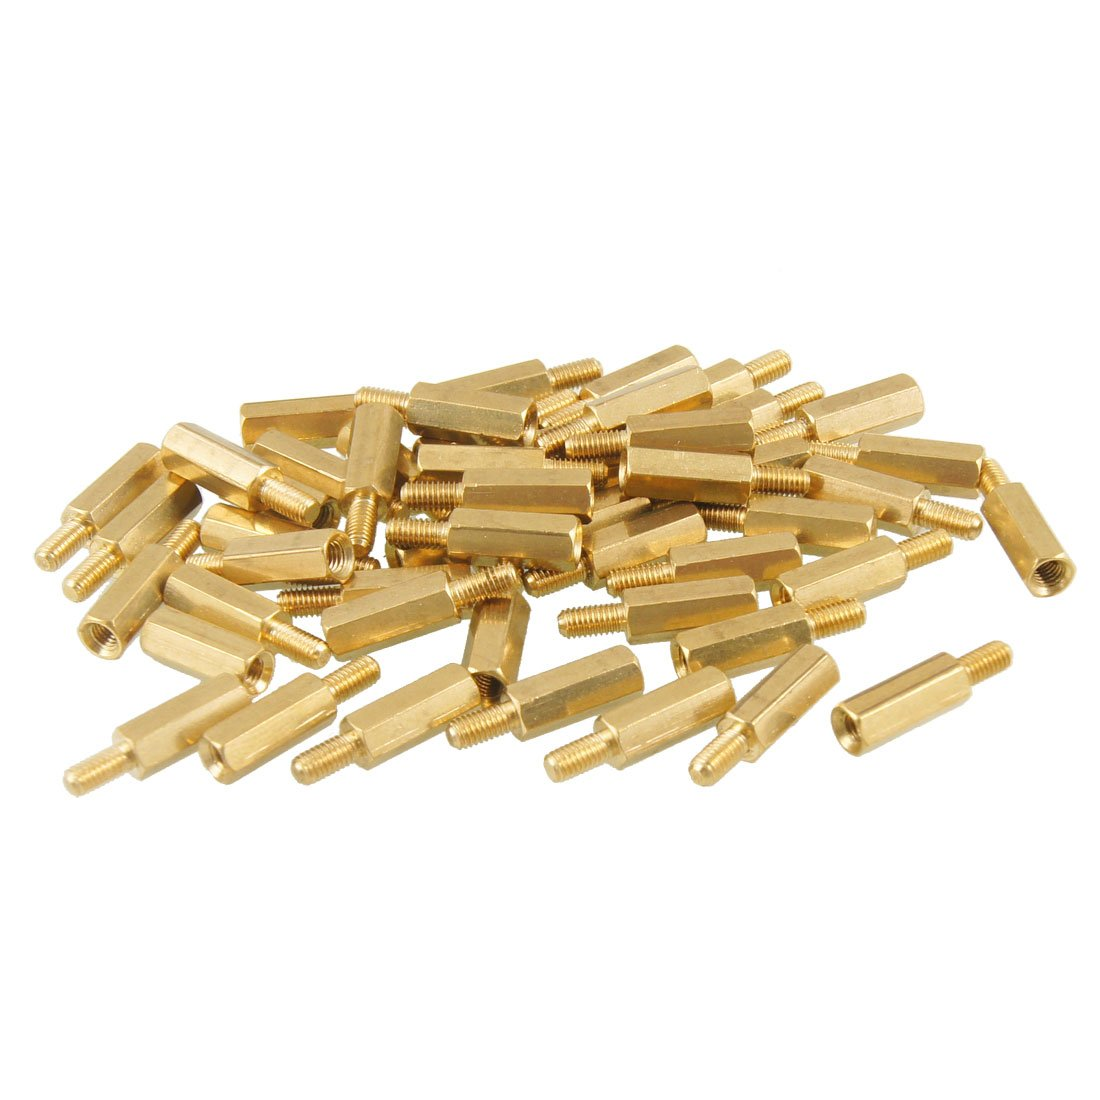 CLOS 50 Pcs Brass Screw Hexagonal Stand-off Spacer M3 Male x M3 Female 12mm Body Length 20pcs m3 copper standoff spacer stud male to female m3 4 6mm hexagonal stud length 4 5 6 7 8 9 10 11 12mm